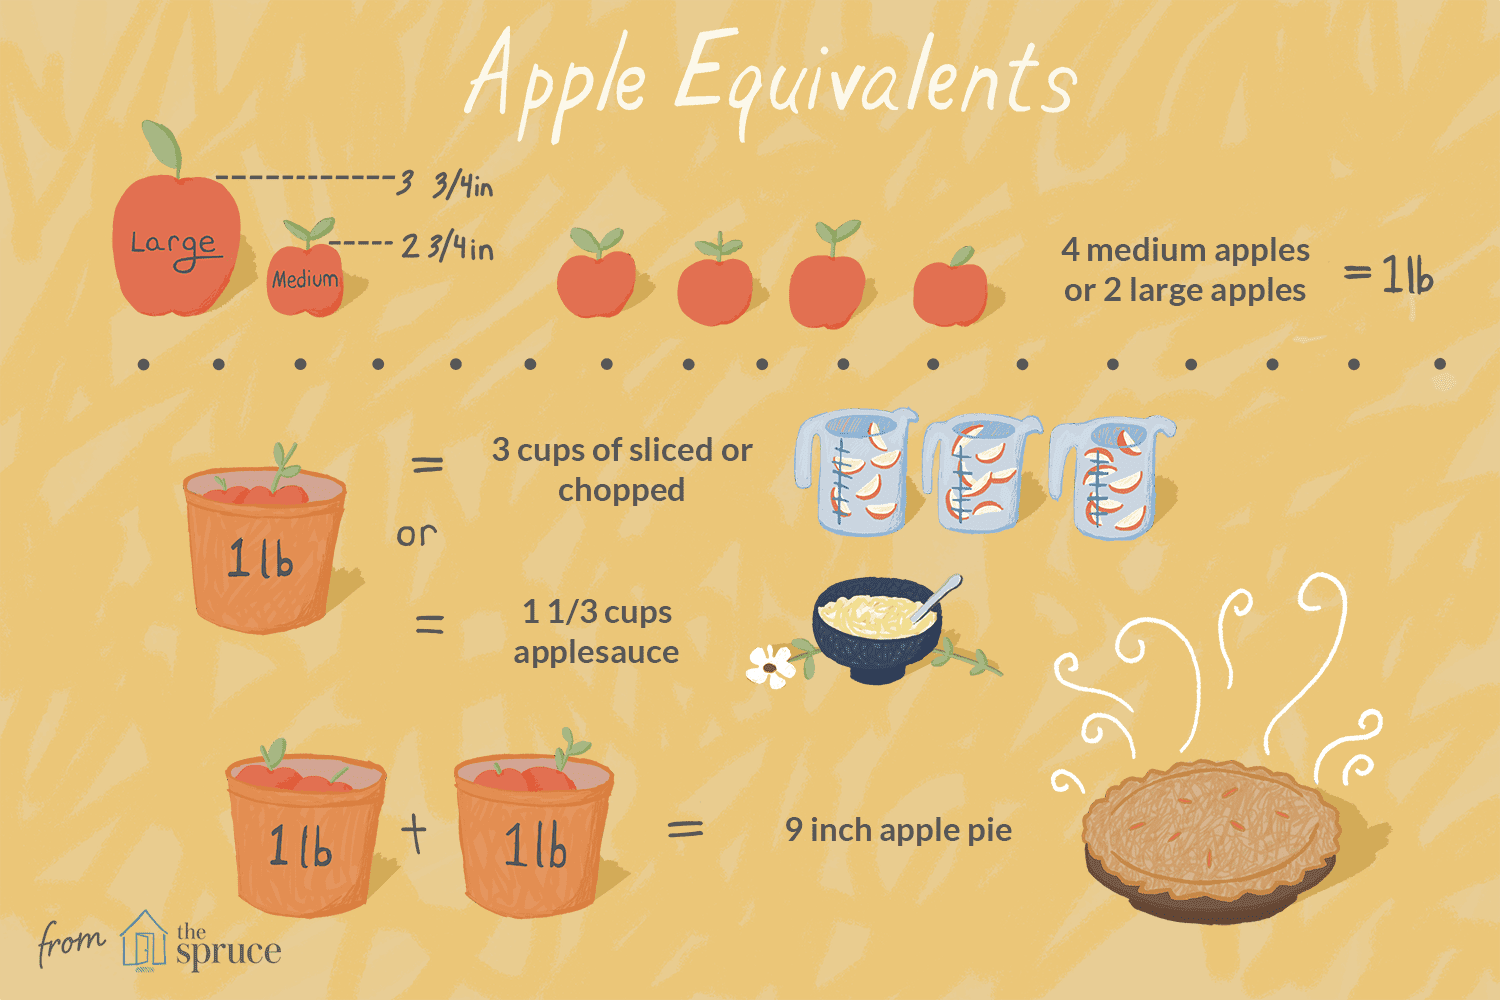 How many calories in a medium sized apple